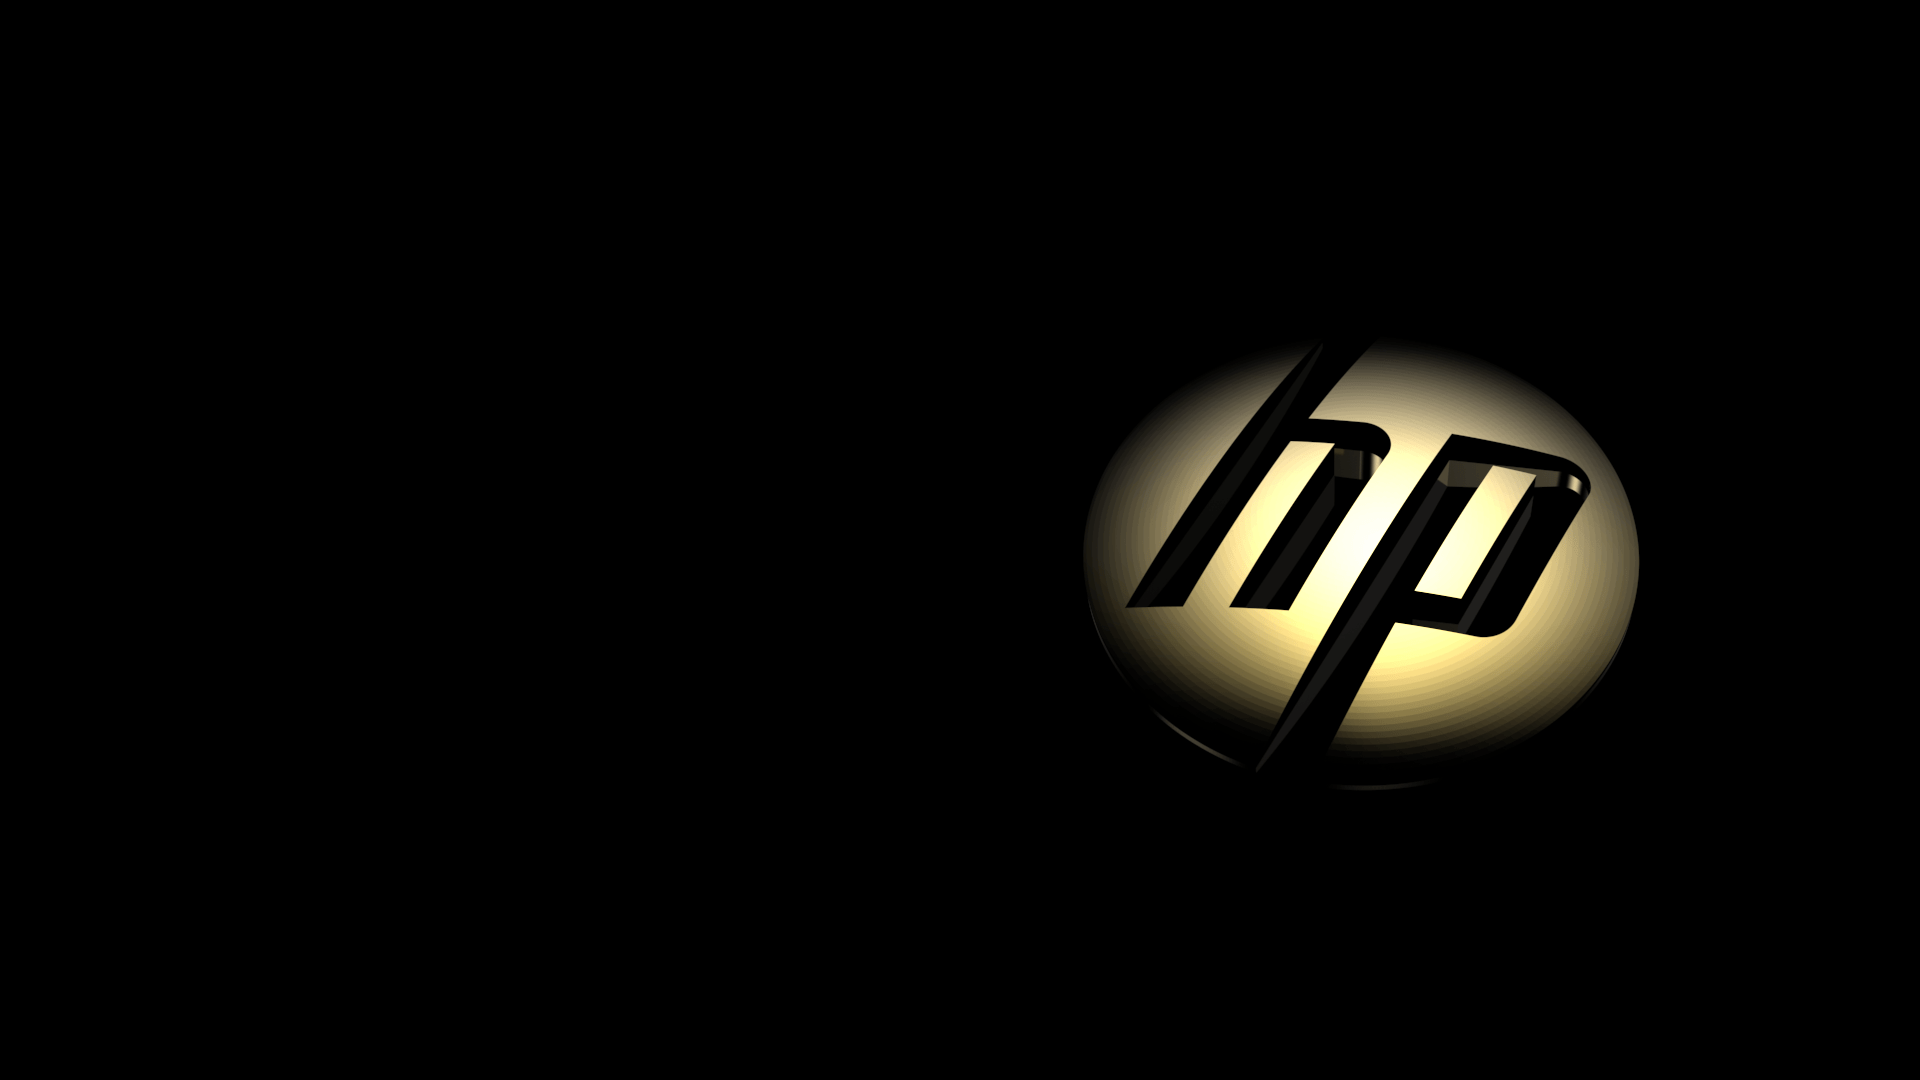 hp wallpapers for windows 10, wallpapers for hp laptops